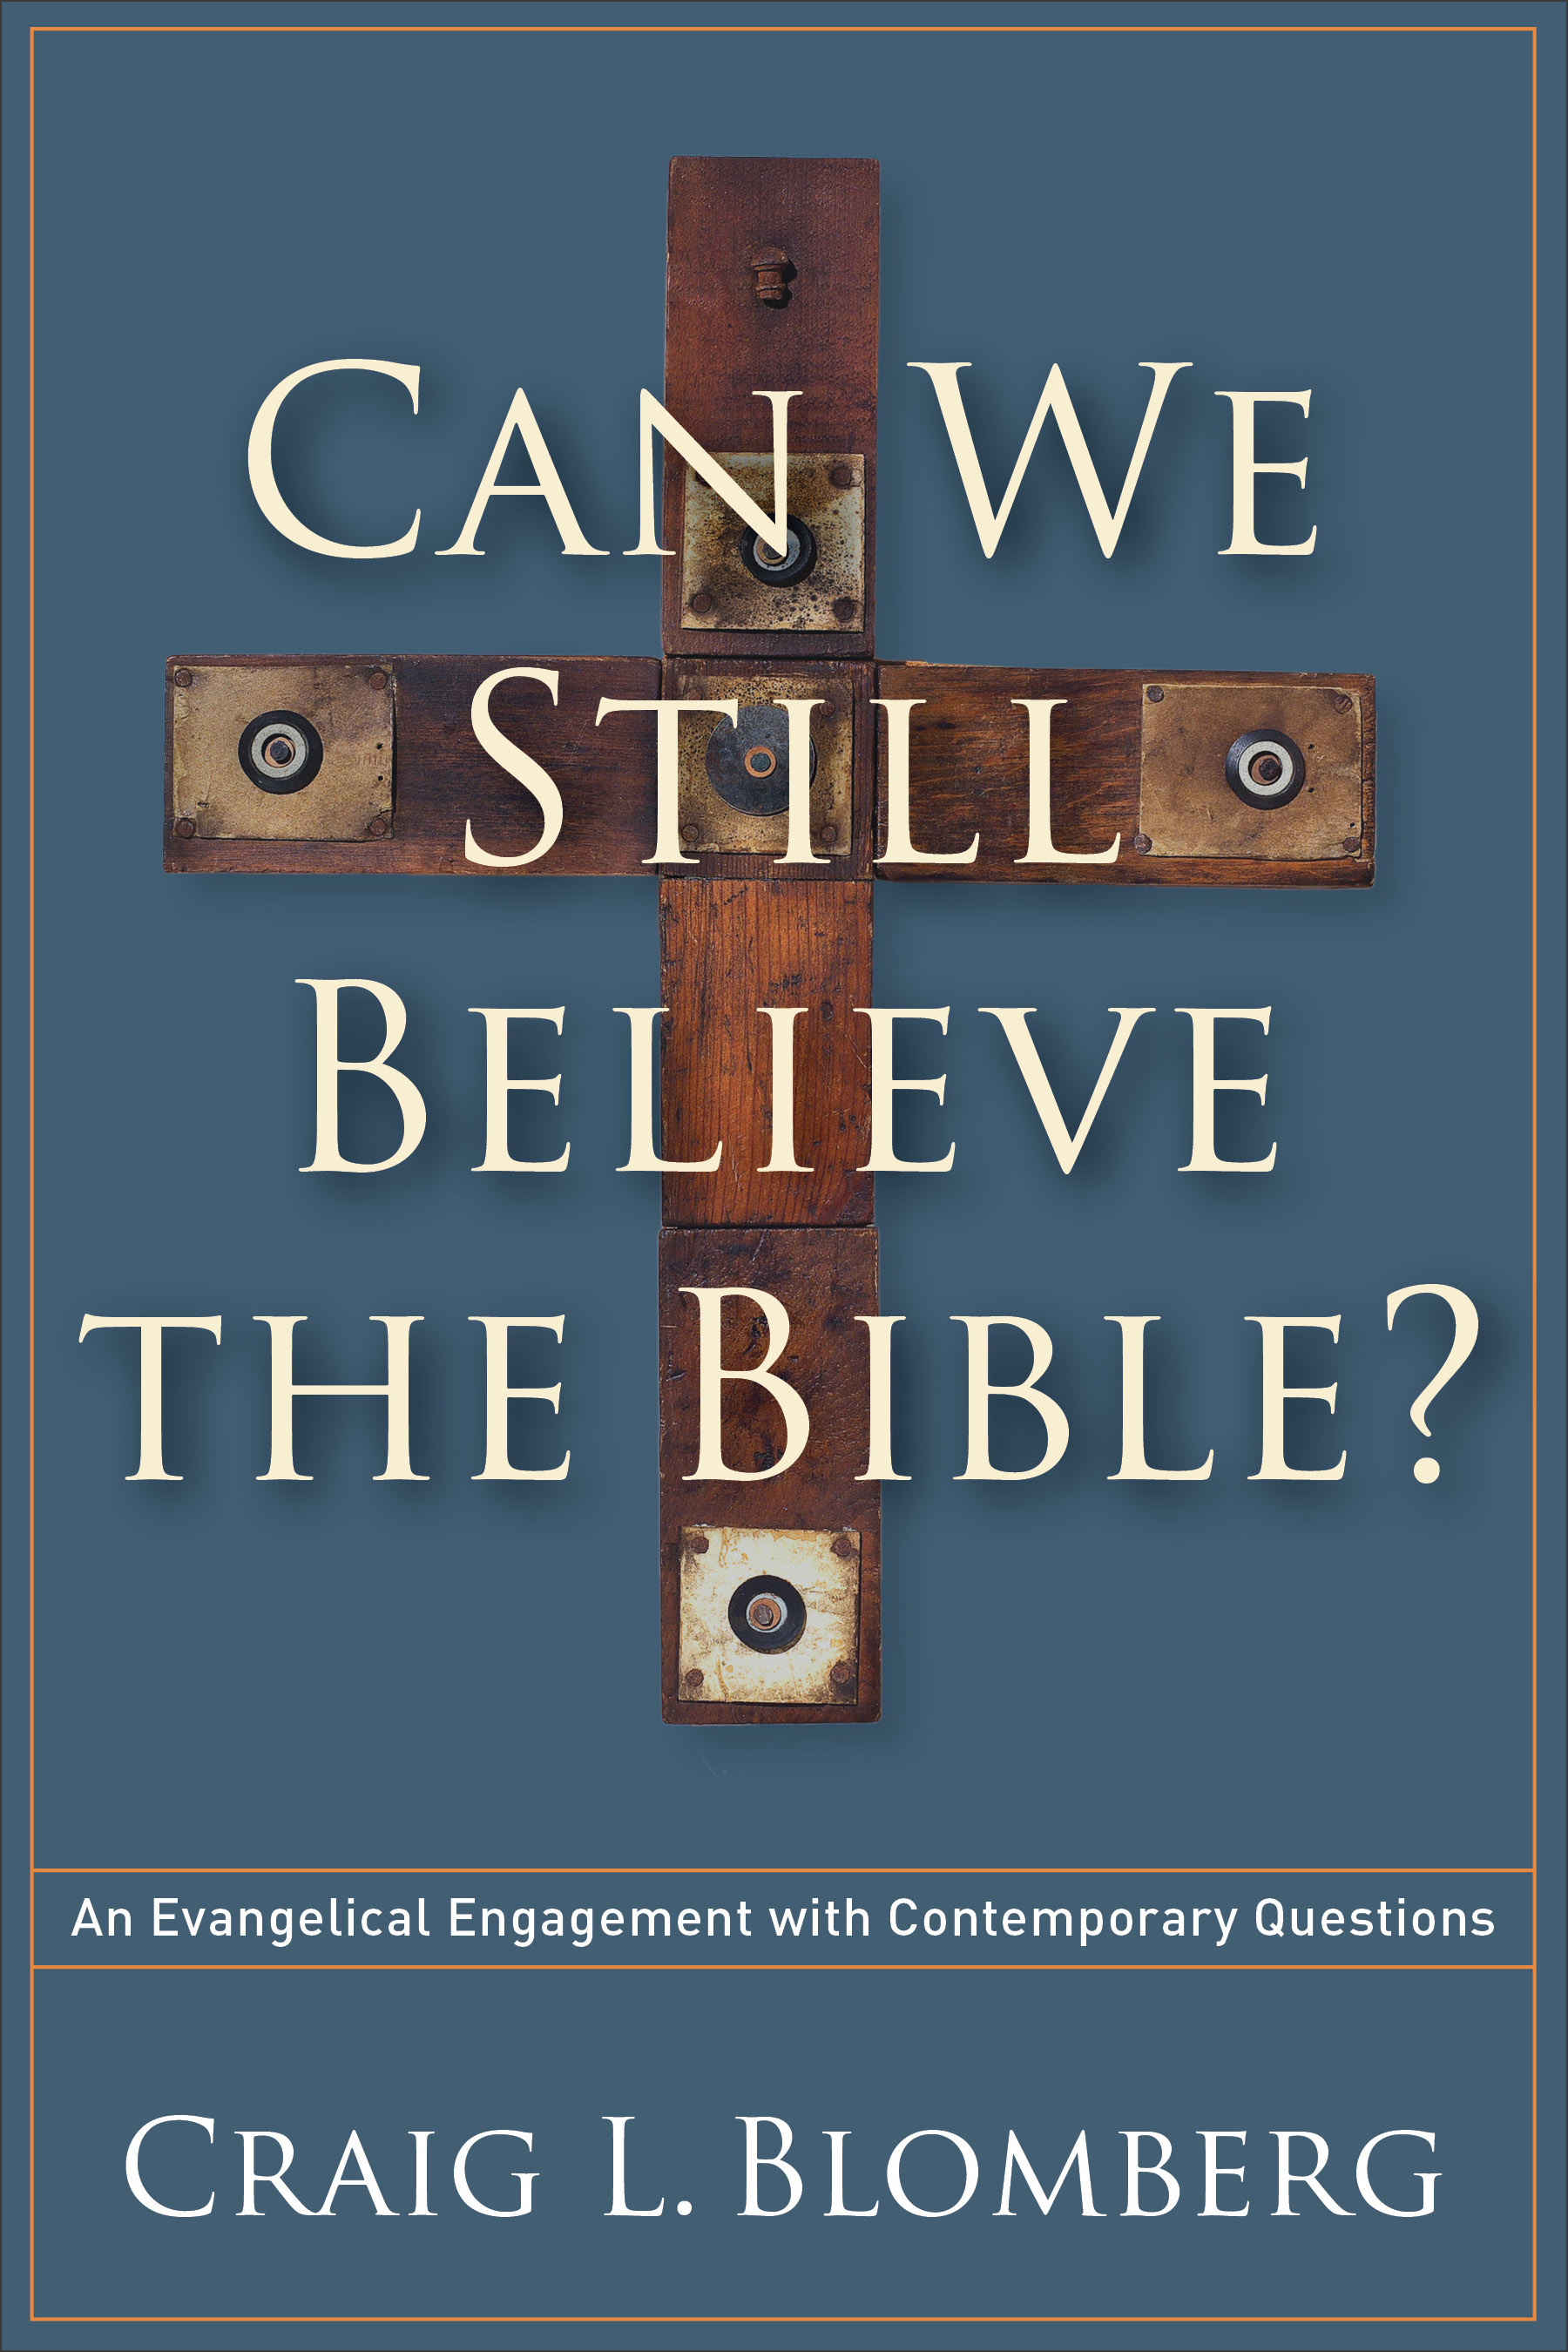 Can We Still Believe the Bible? An Evangelical Engagement with Contemporary Questions